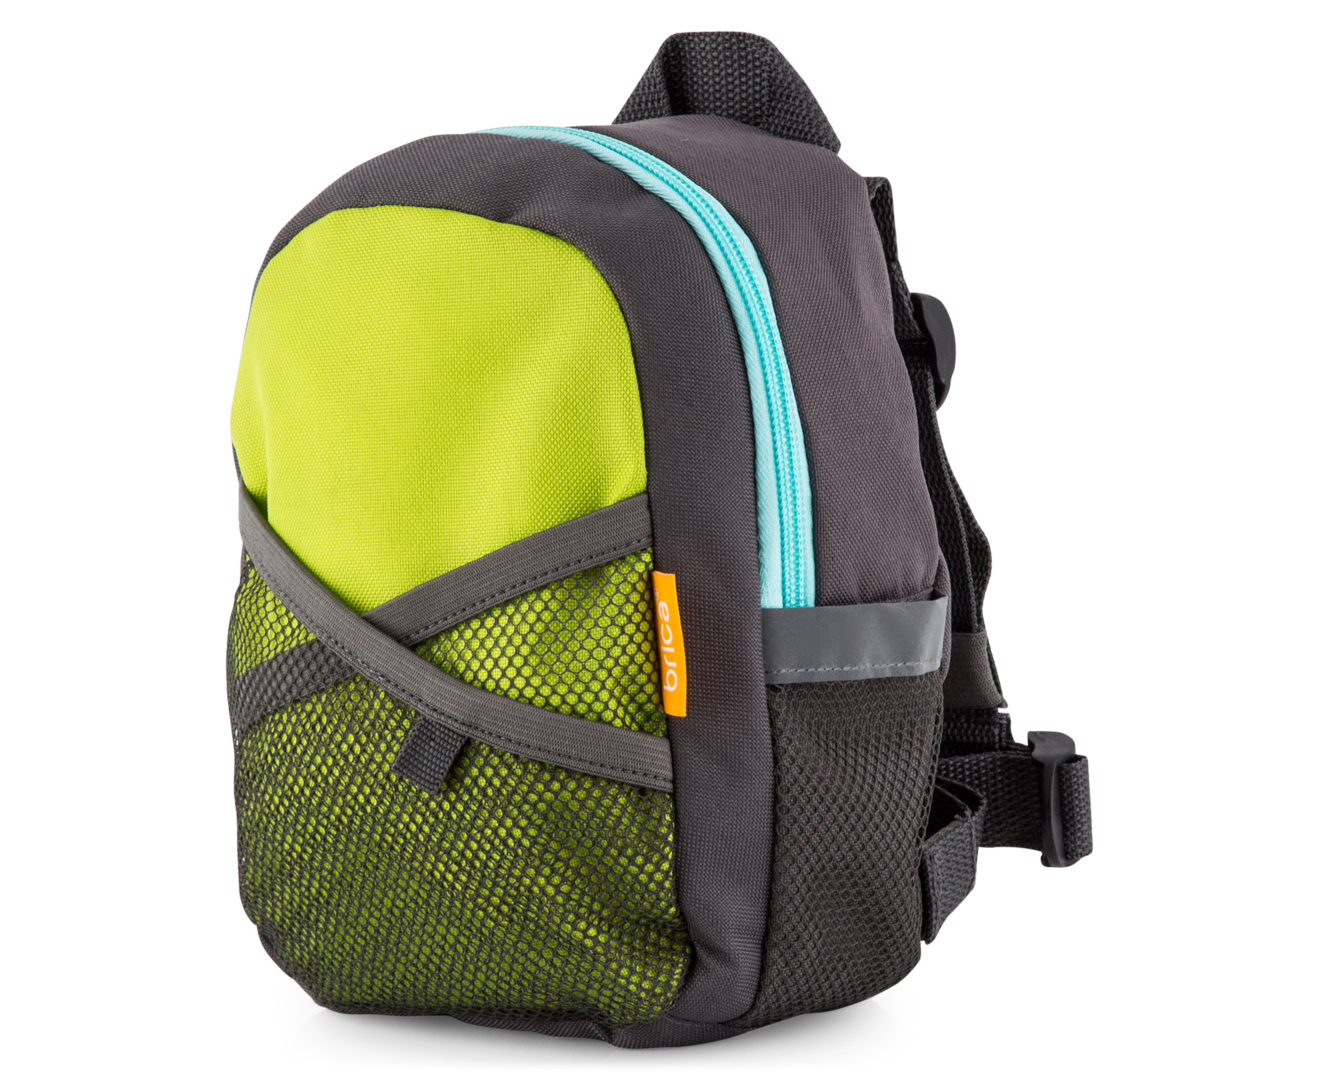 Brica By My Side Kids Safety Harness Backpack Green